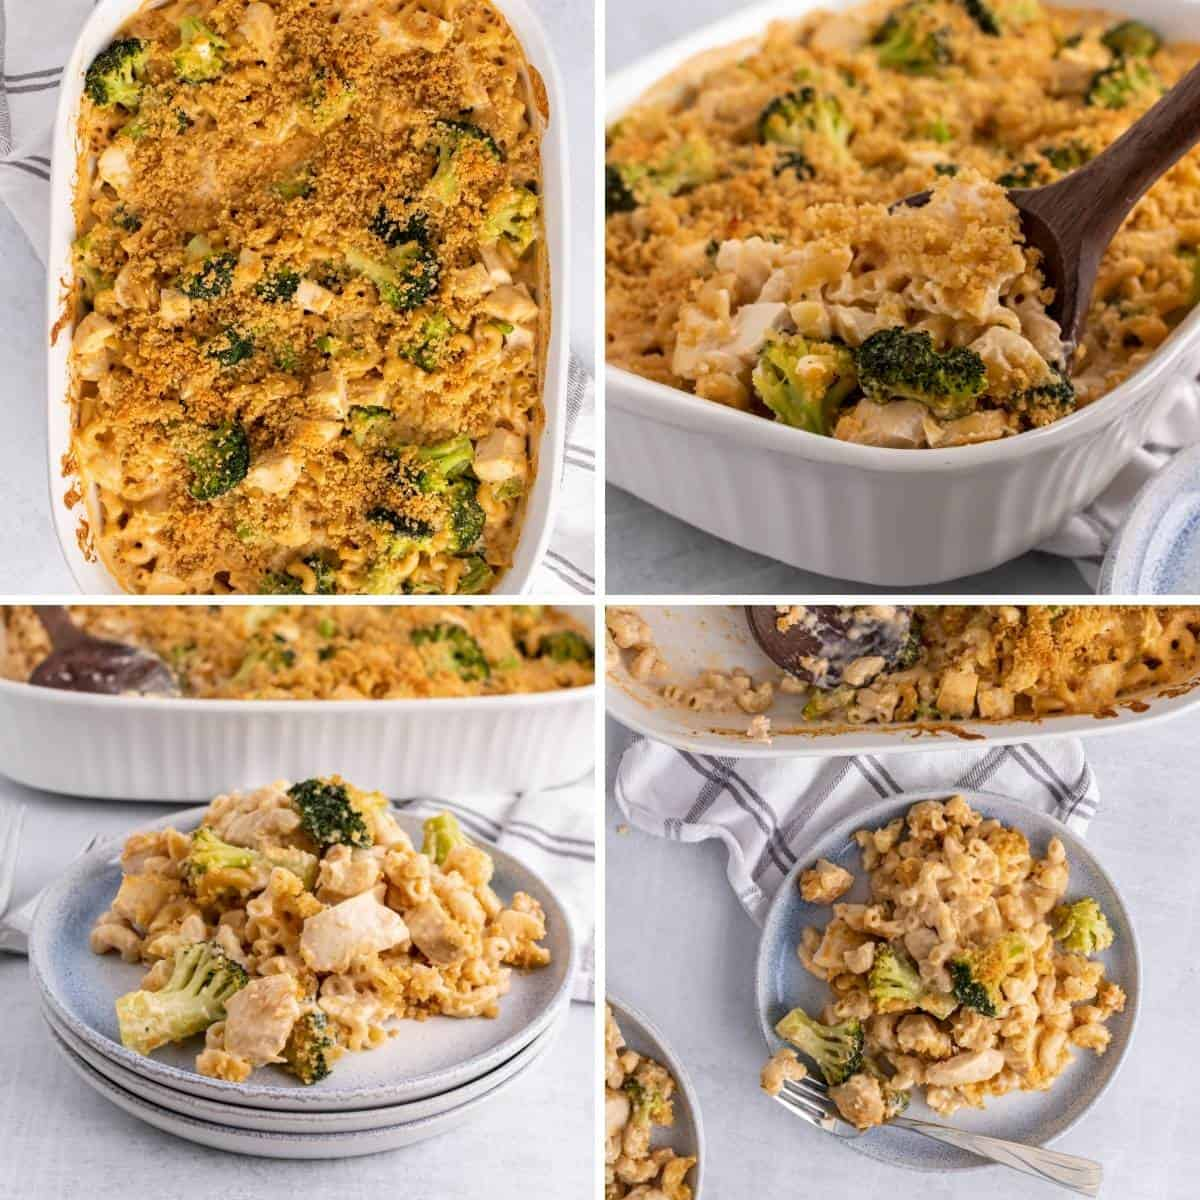 step by step collage showing the cooked results of the chicken broccoli pasta bake.